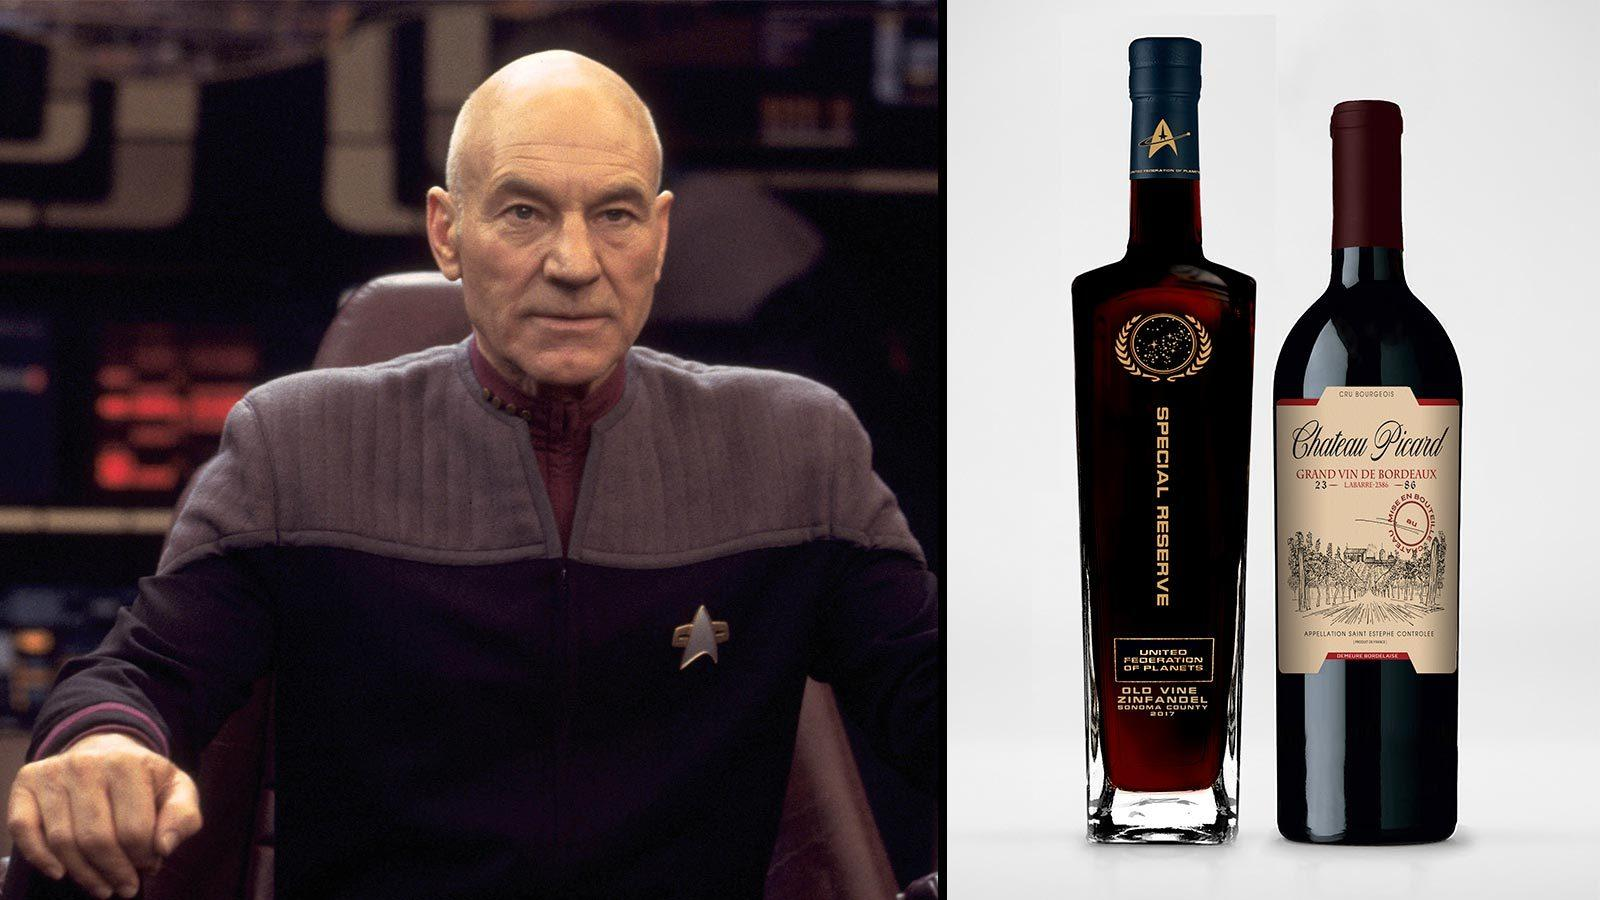 Jean-Luc Picard abd bottles of Special Reserve United Federation of Planets Zinfandel and Château Picard's Star Trek cuvée